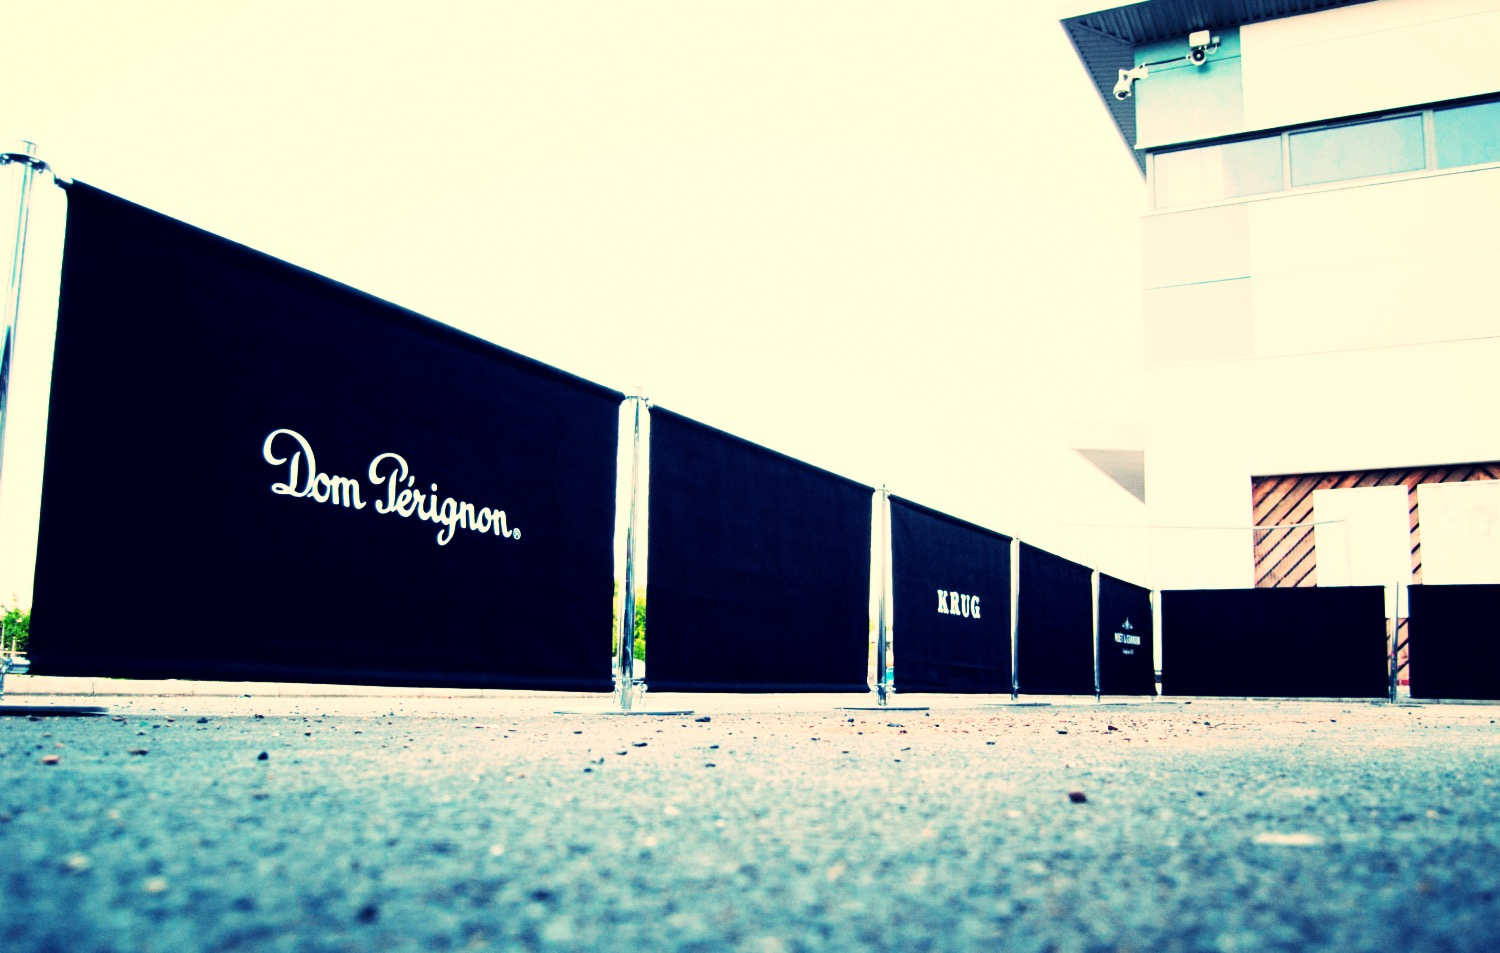 Dom-Perignon-Cafe-Barriers_edited